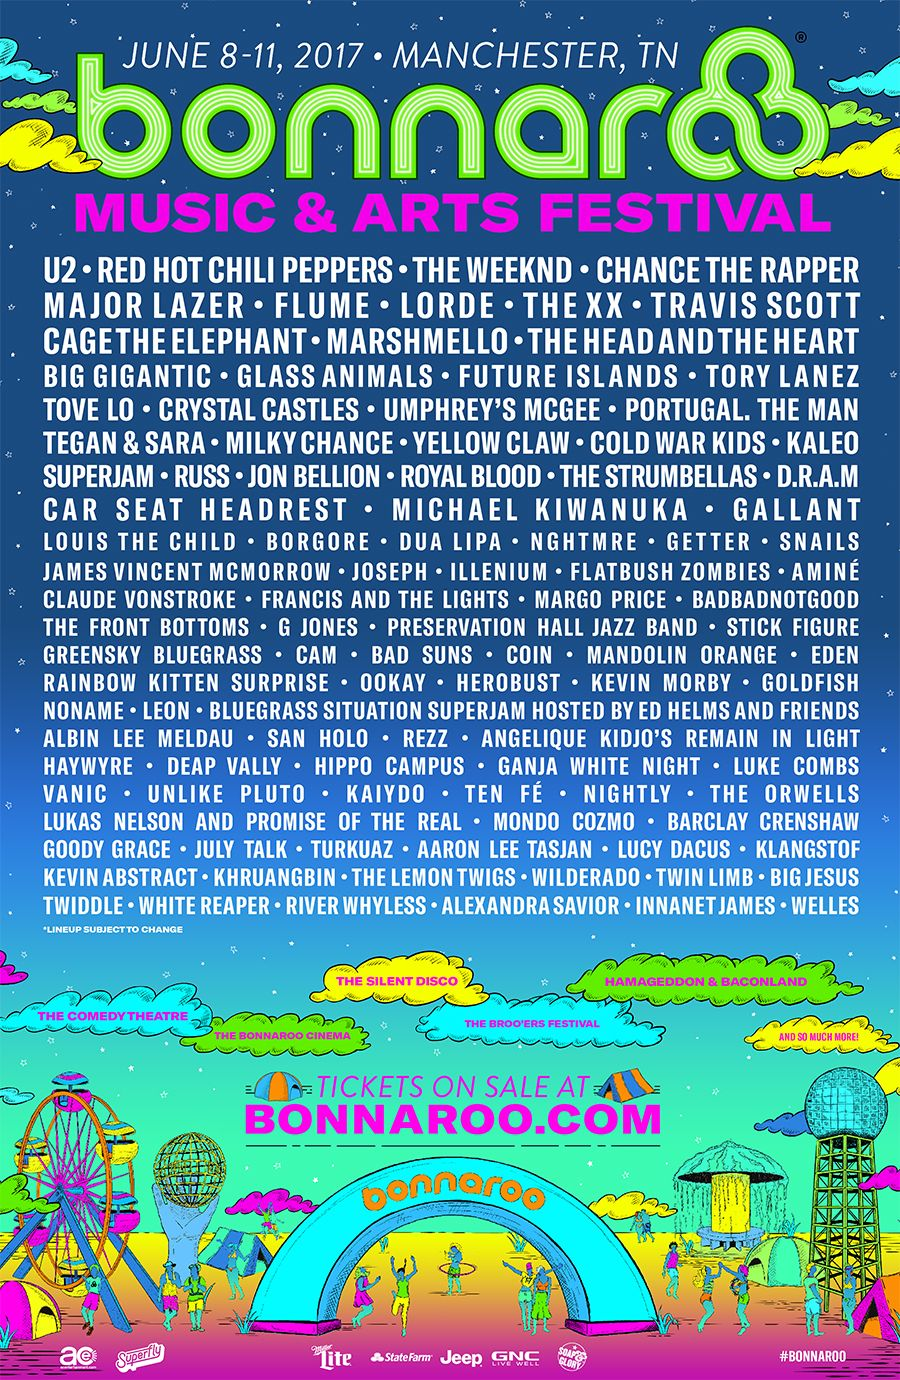 2020 Bonnaroo Music And Arts Festival Lineup.Full Lineup Tickets Available Now Bonnaroo Music Arts